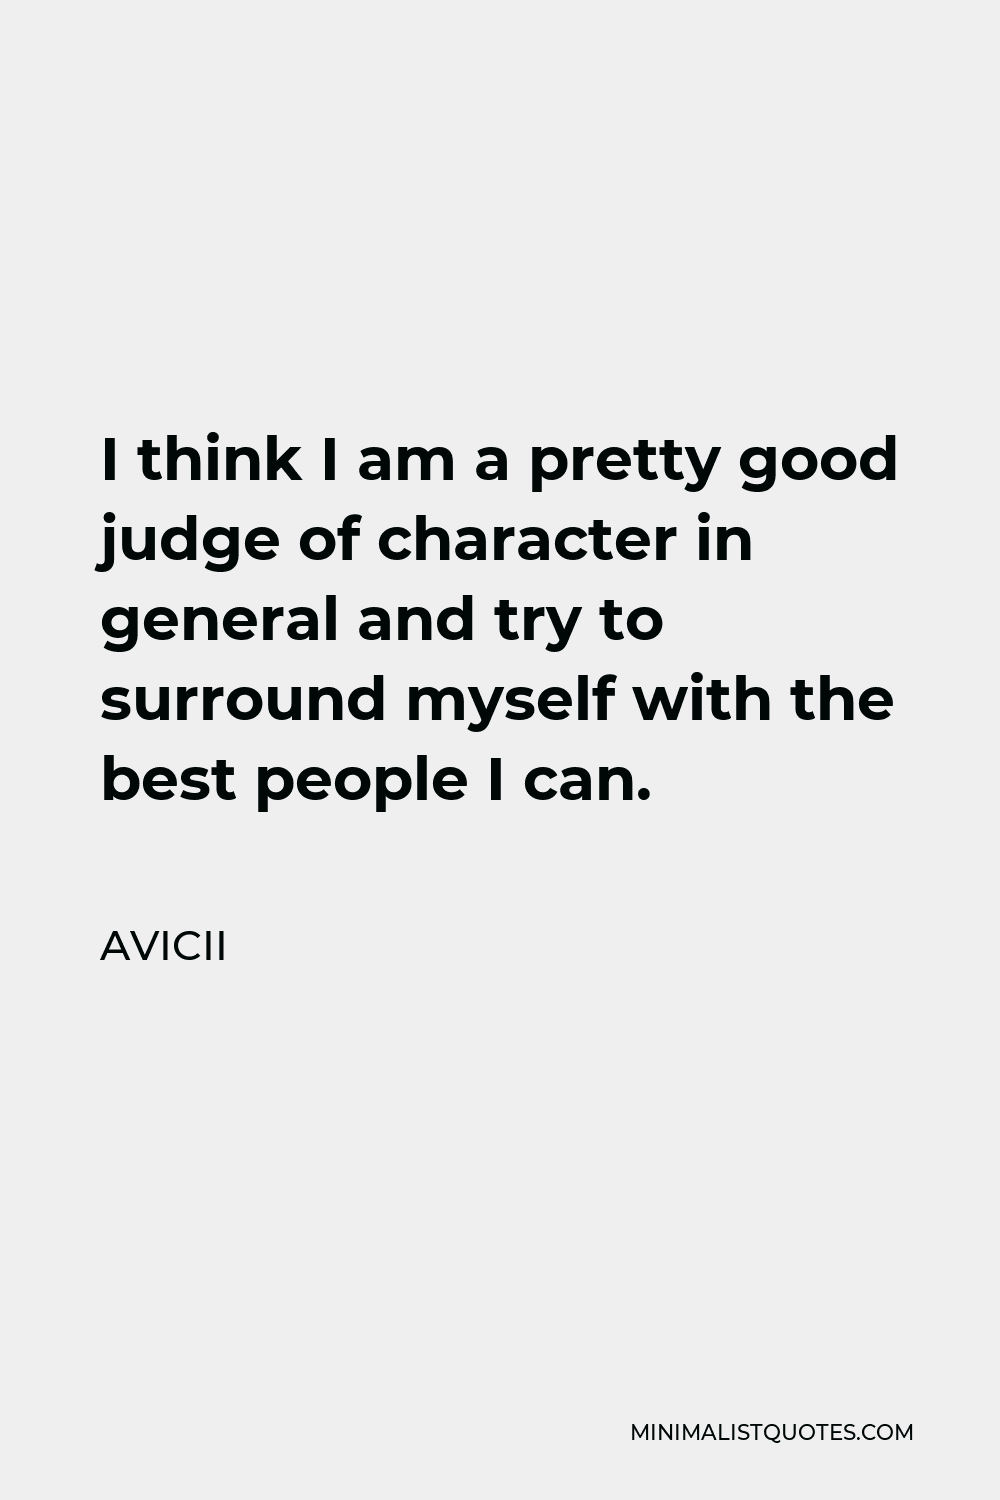 Avicii Quote - I think I am a pretty good judge of character in general and try to surround myself with the best people I can.